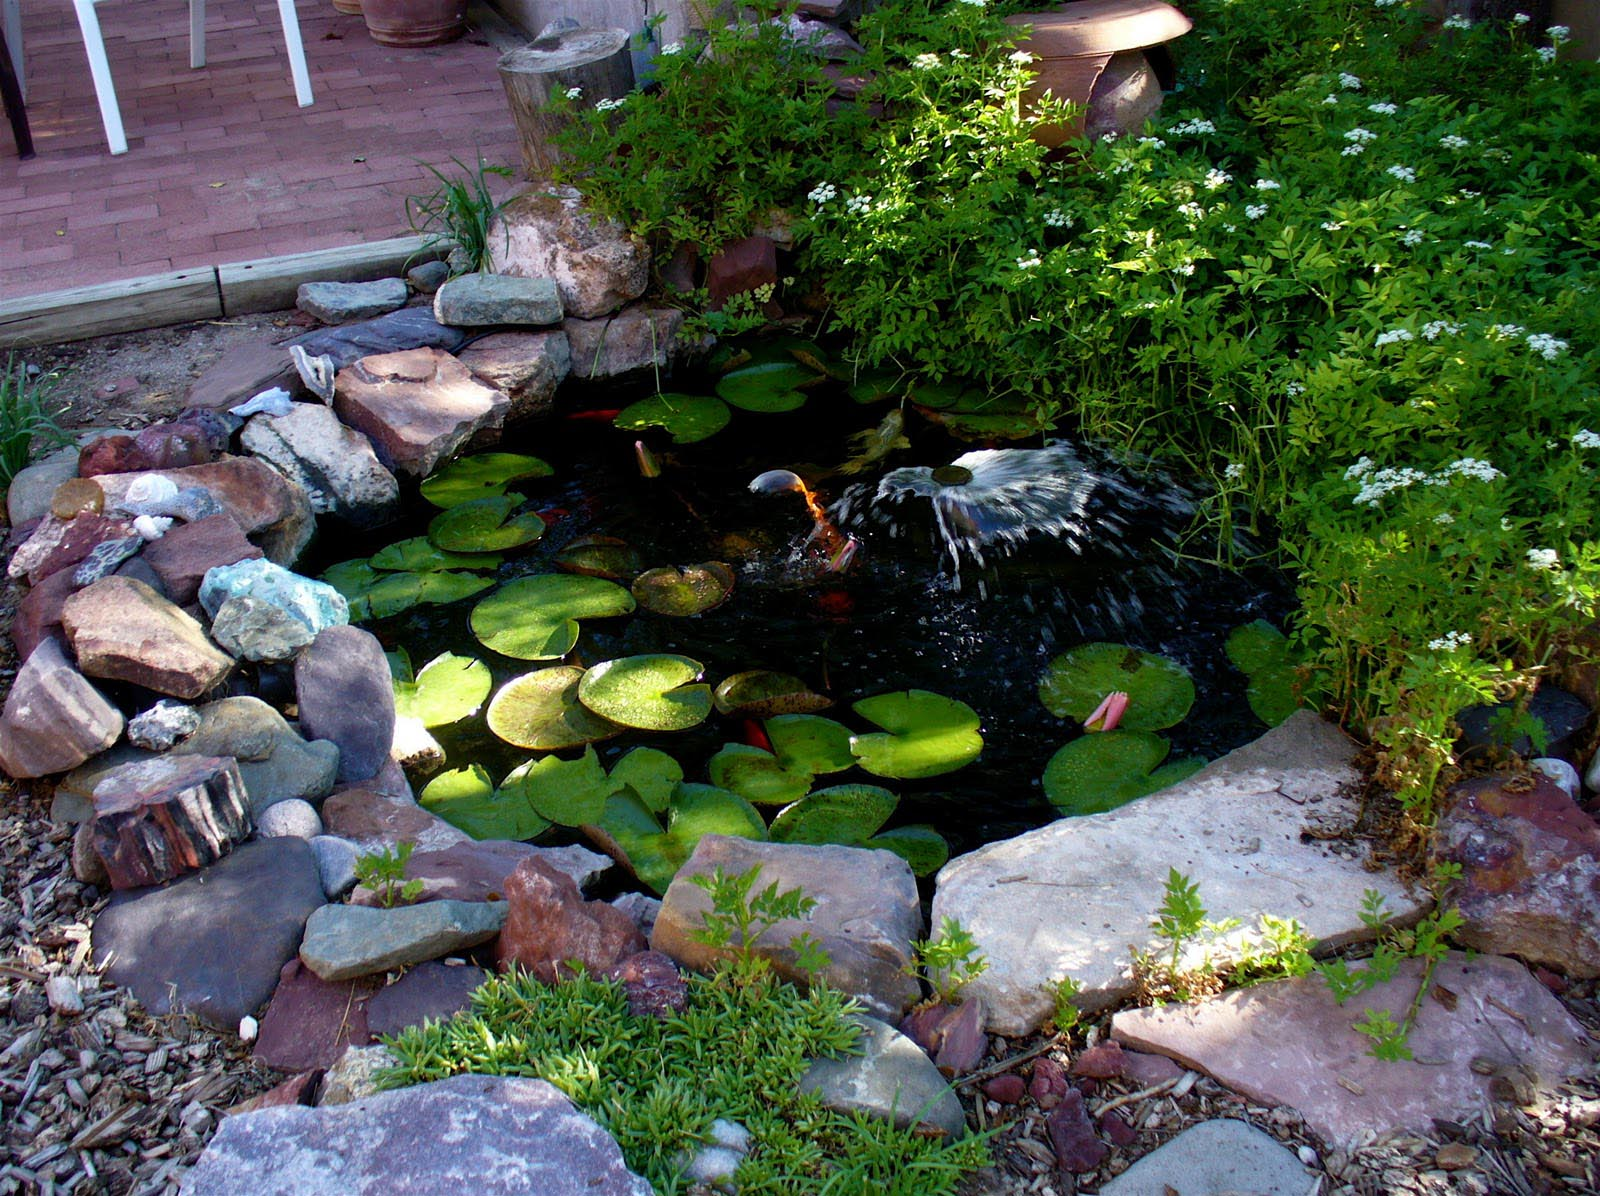 Garden fish pond ideas backyard design ideas for Outdoor goldfish pond ideas